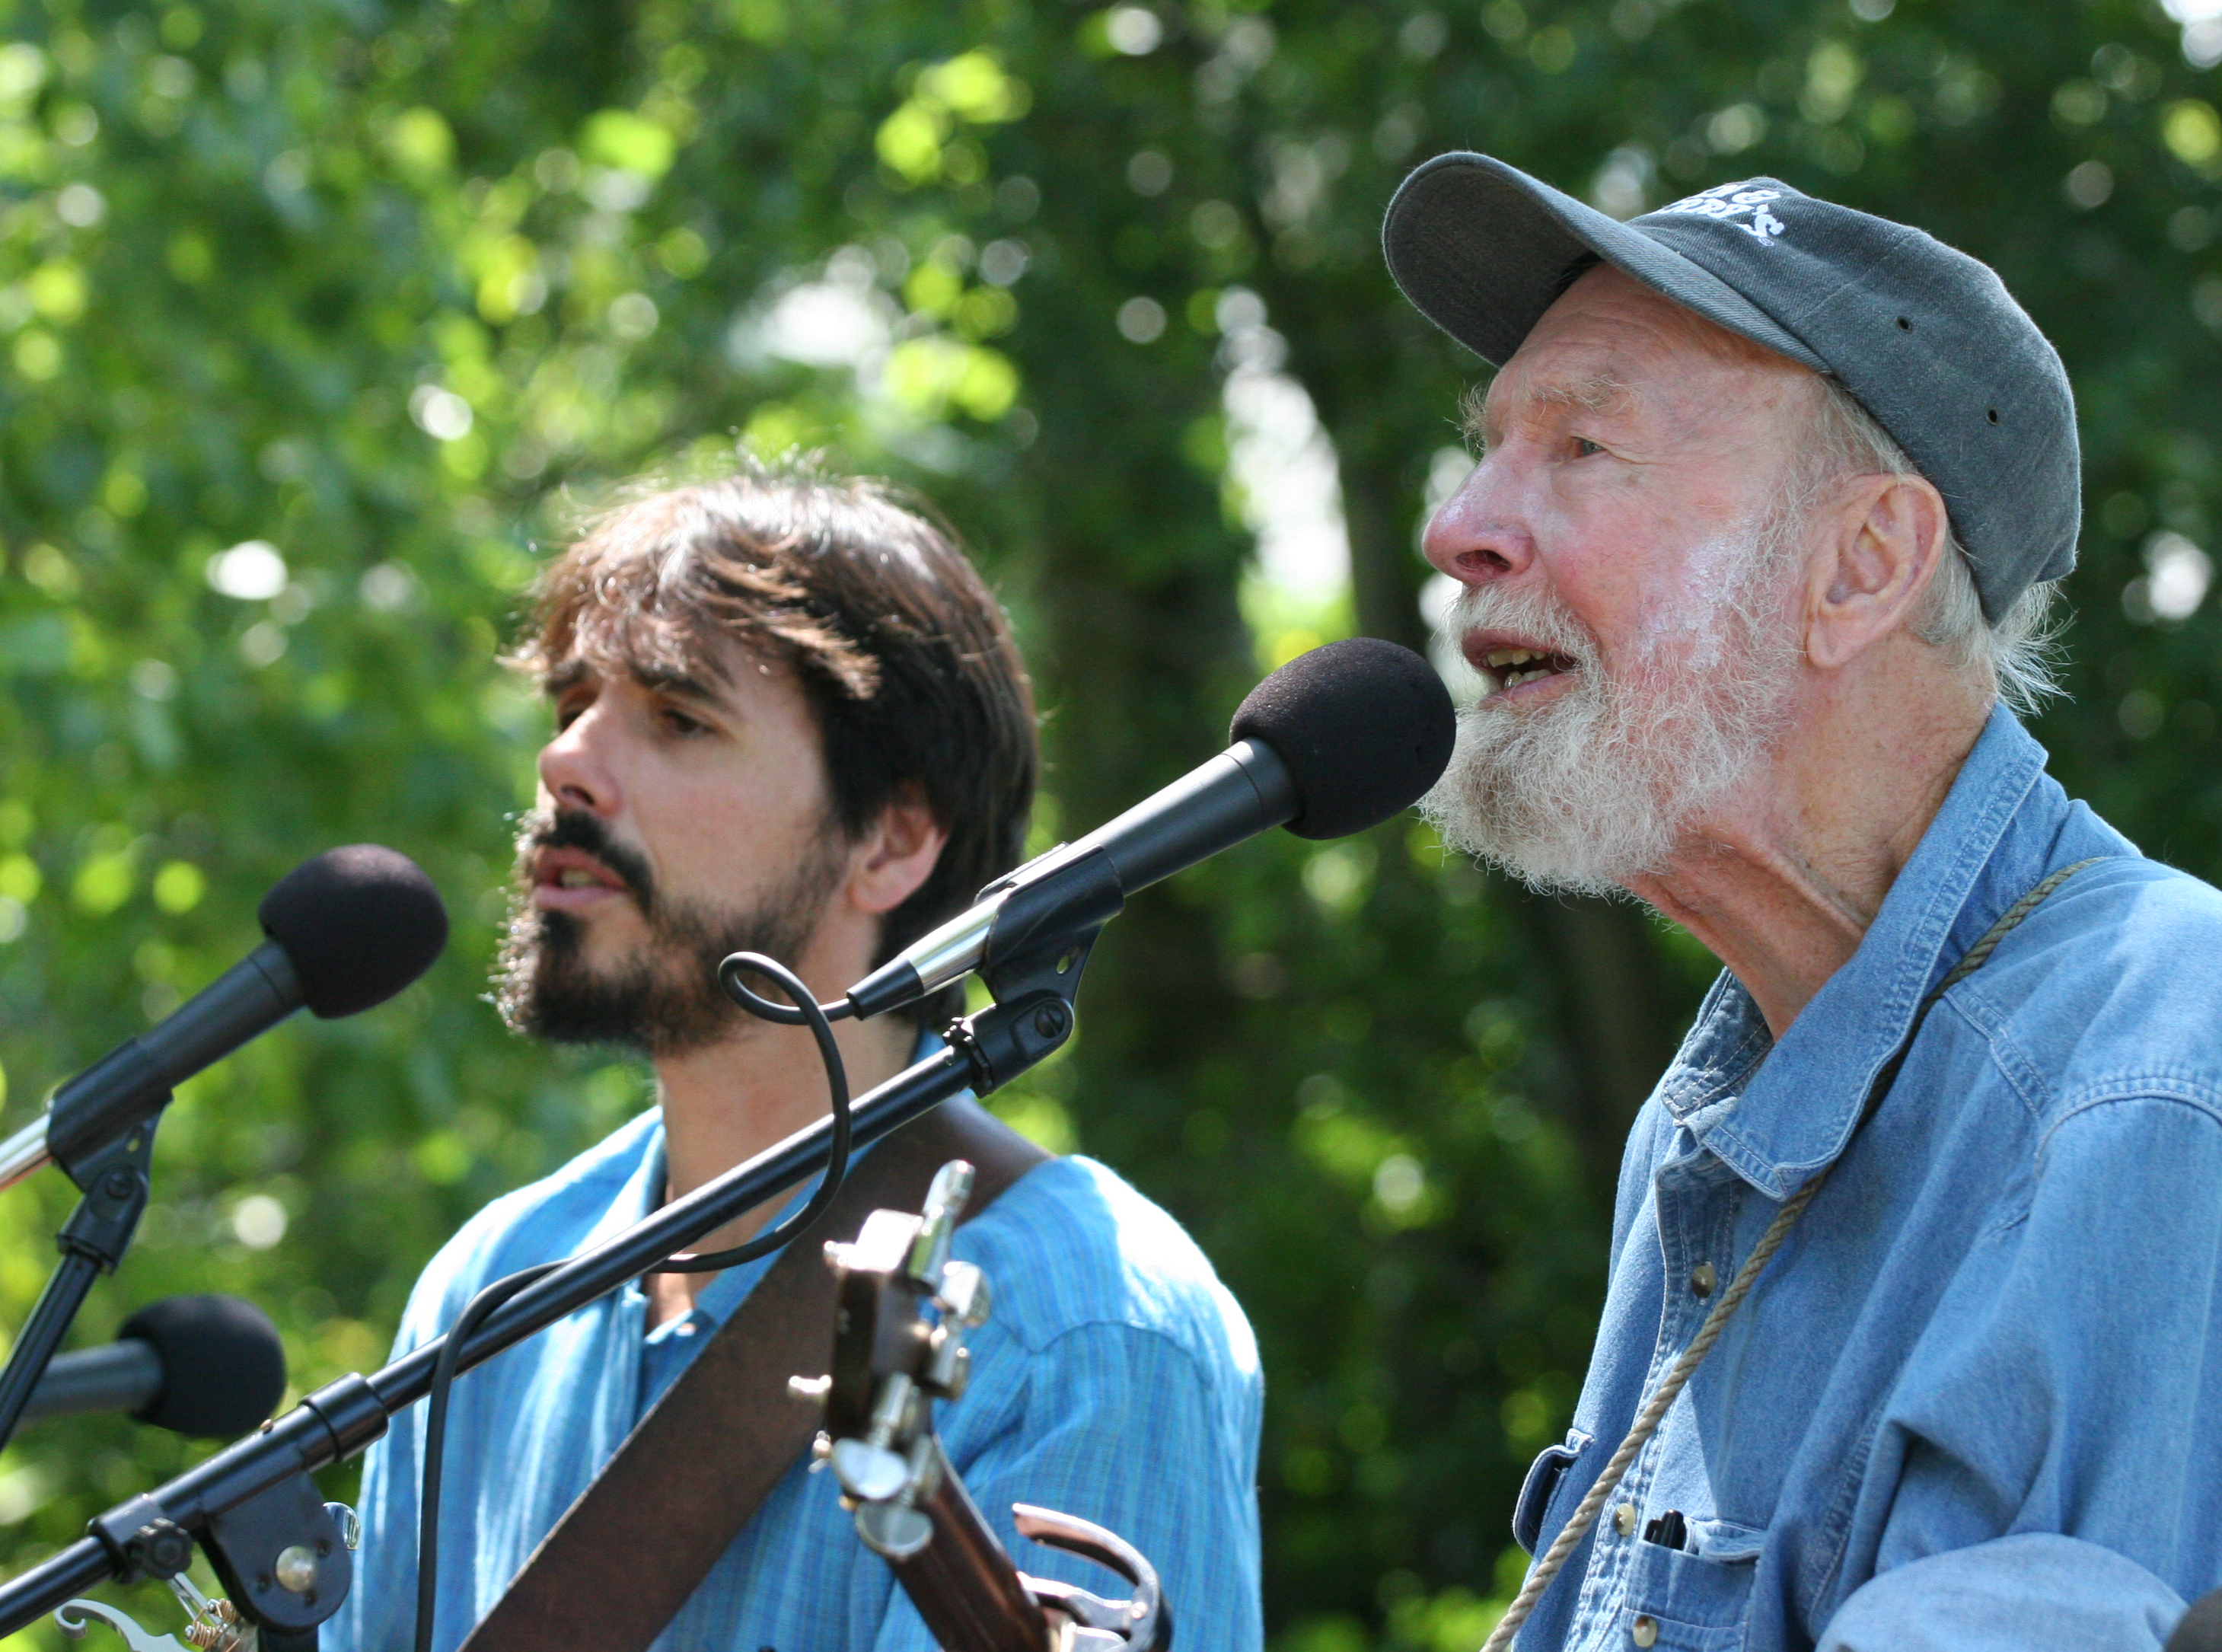 Spook Handy & Pete Seeger at the Corn Festival in Beacon, NY 2006 (photo by Econosmith)